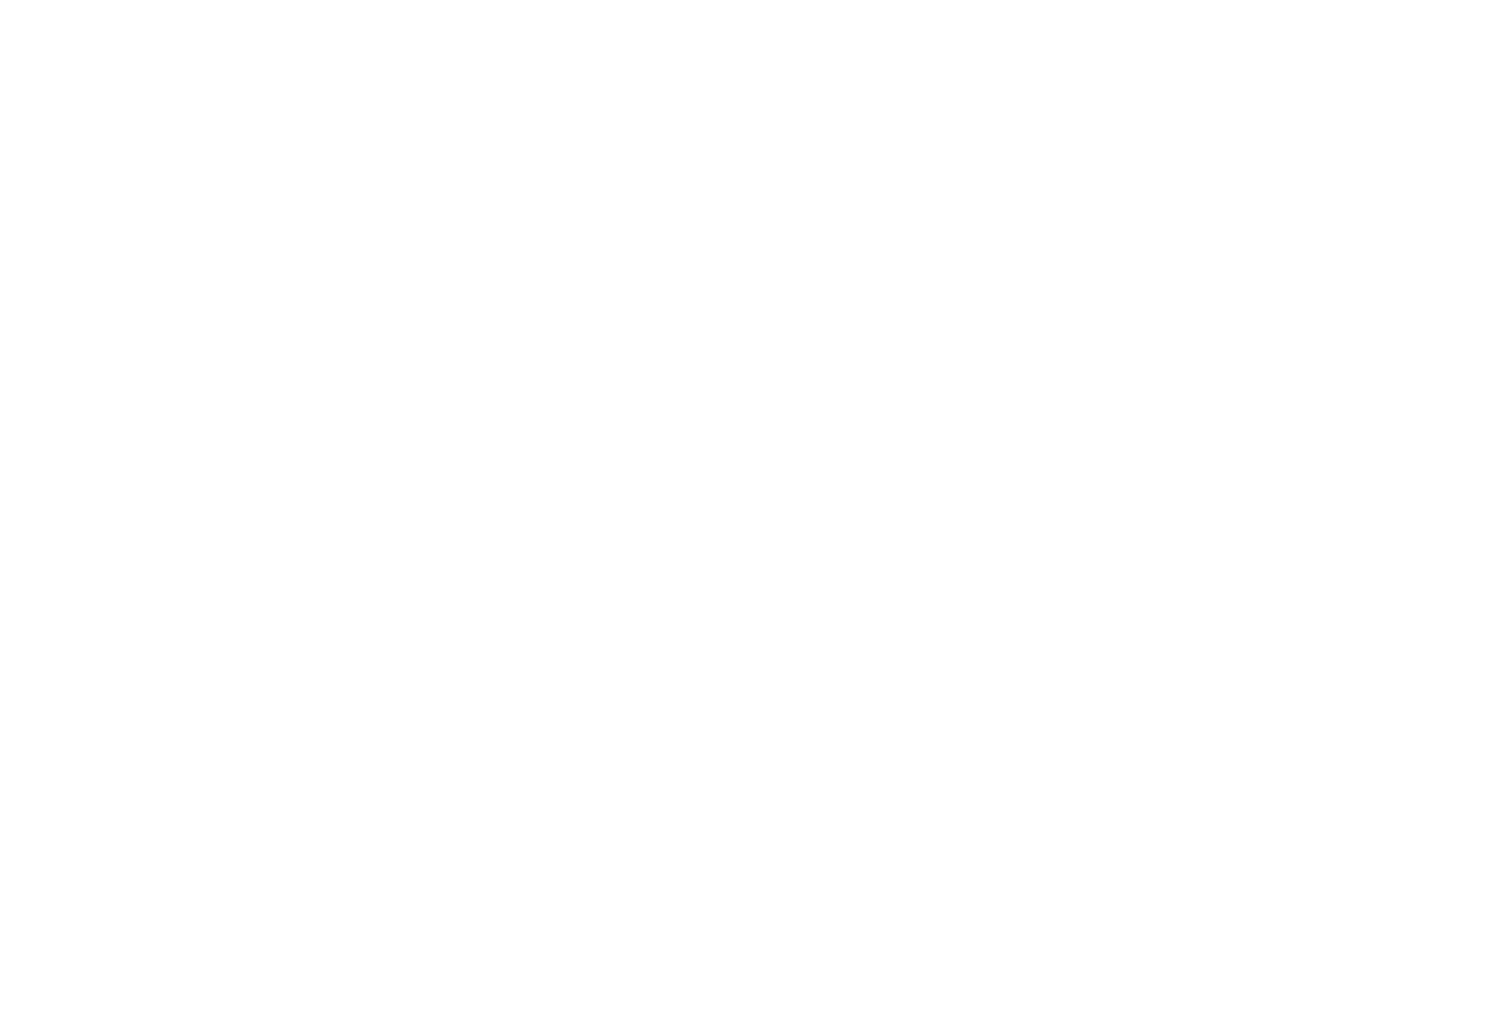 Chantal Ireland